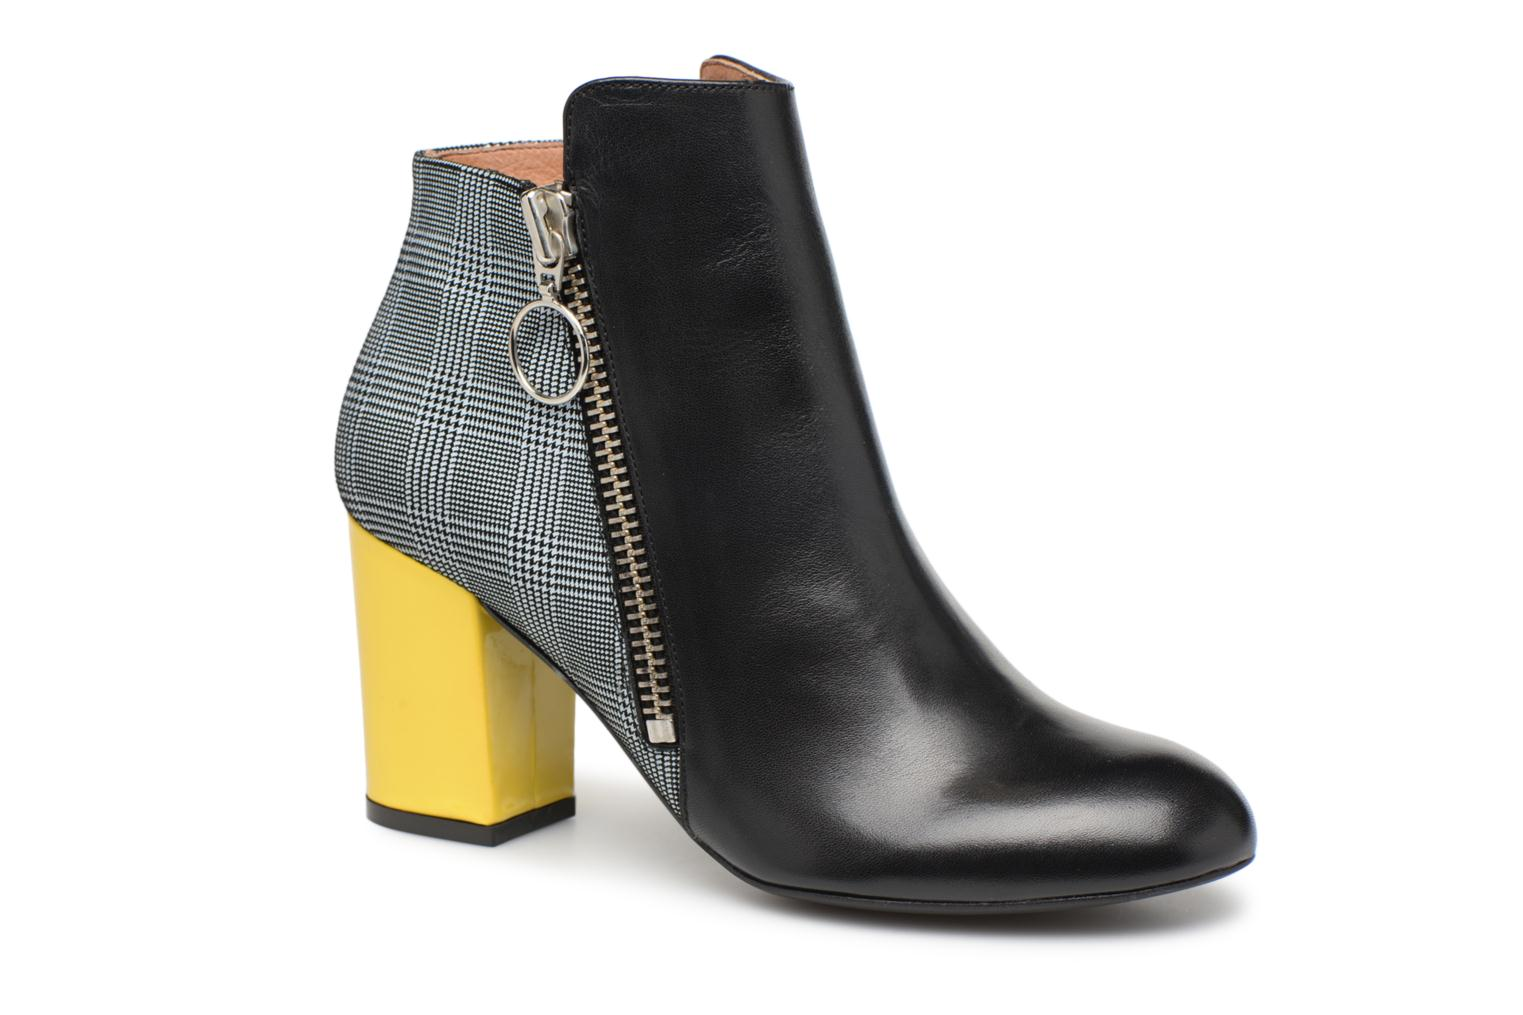 Noirprince Cuir 10 Made Bottines Sarenza De Gallesjaune Talons Girl à By Busy Multi zw4zvqT